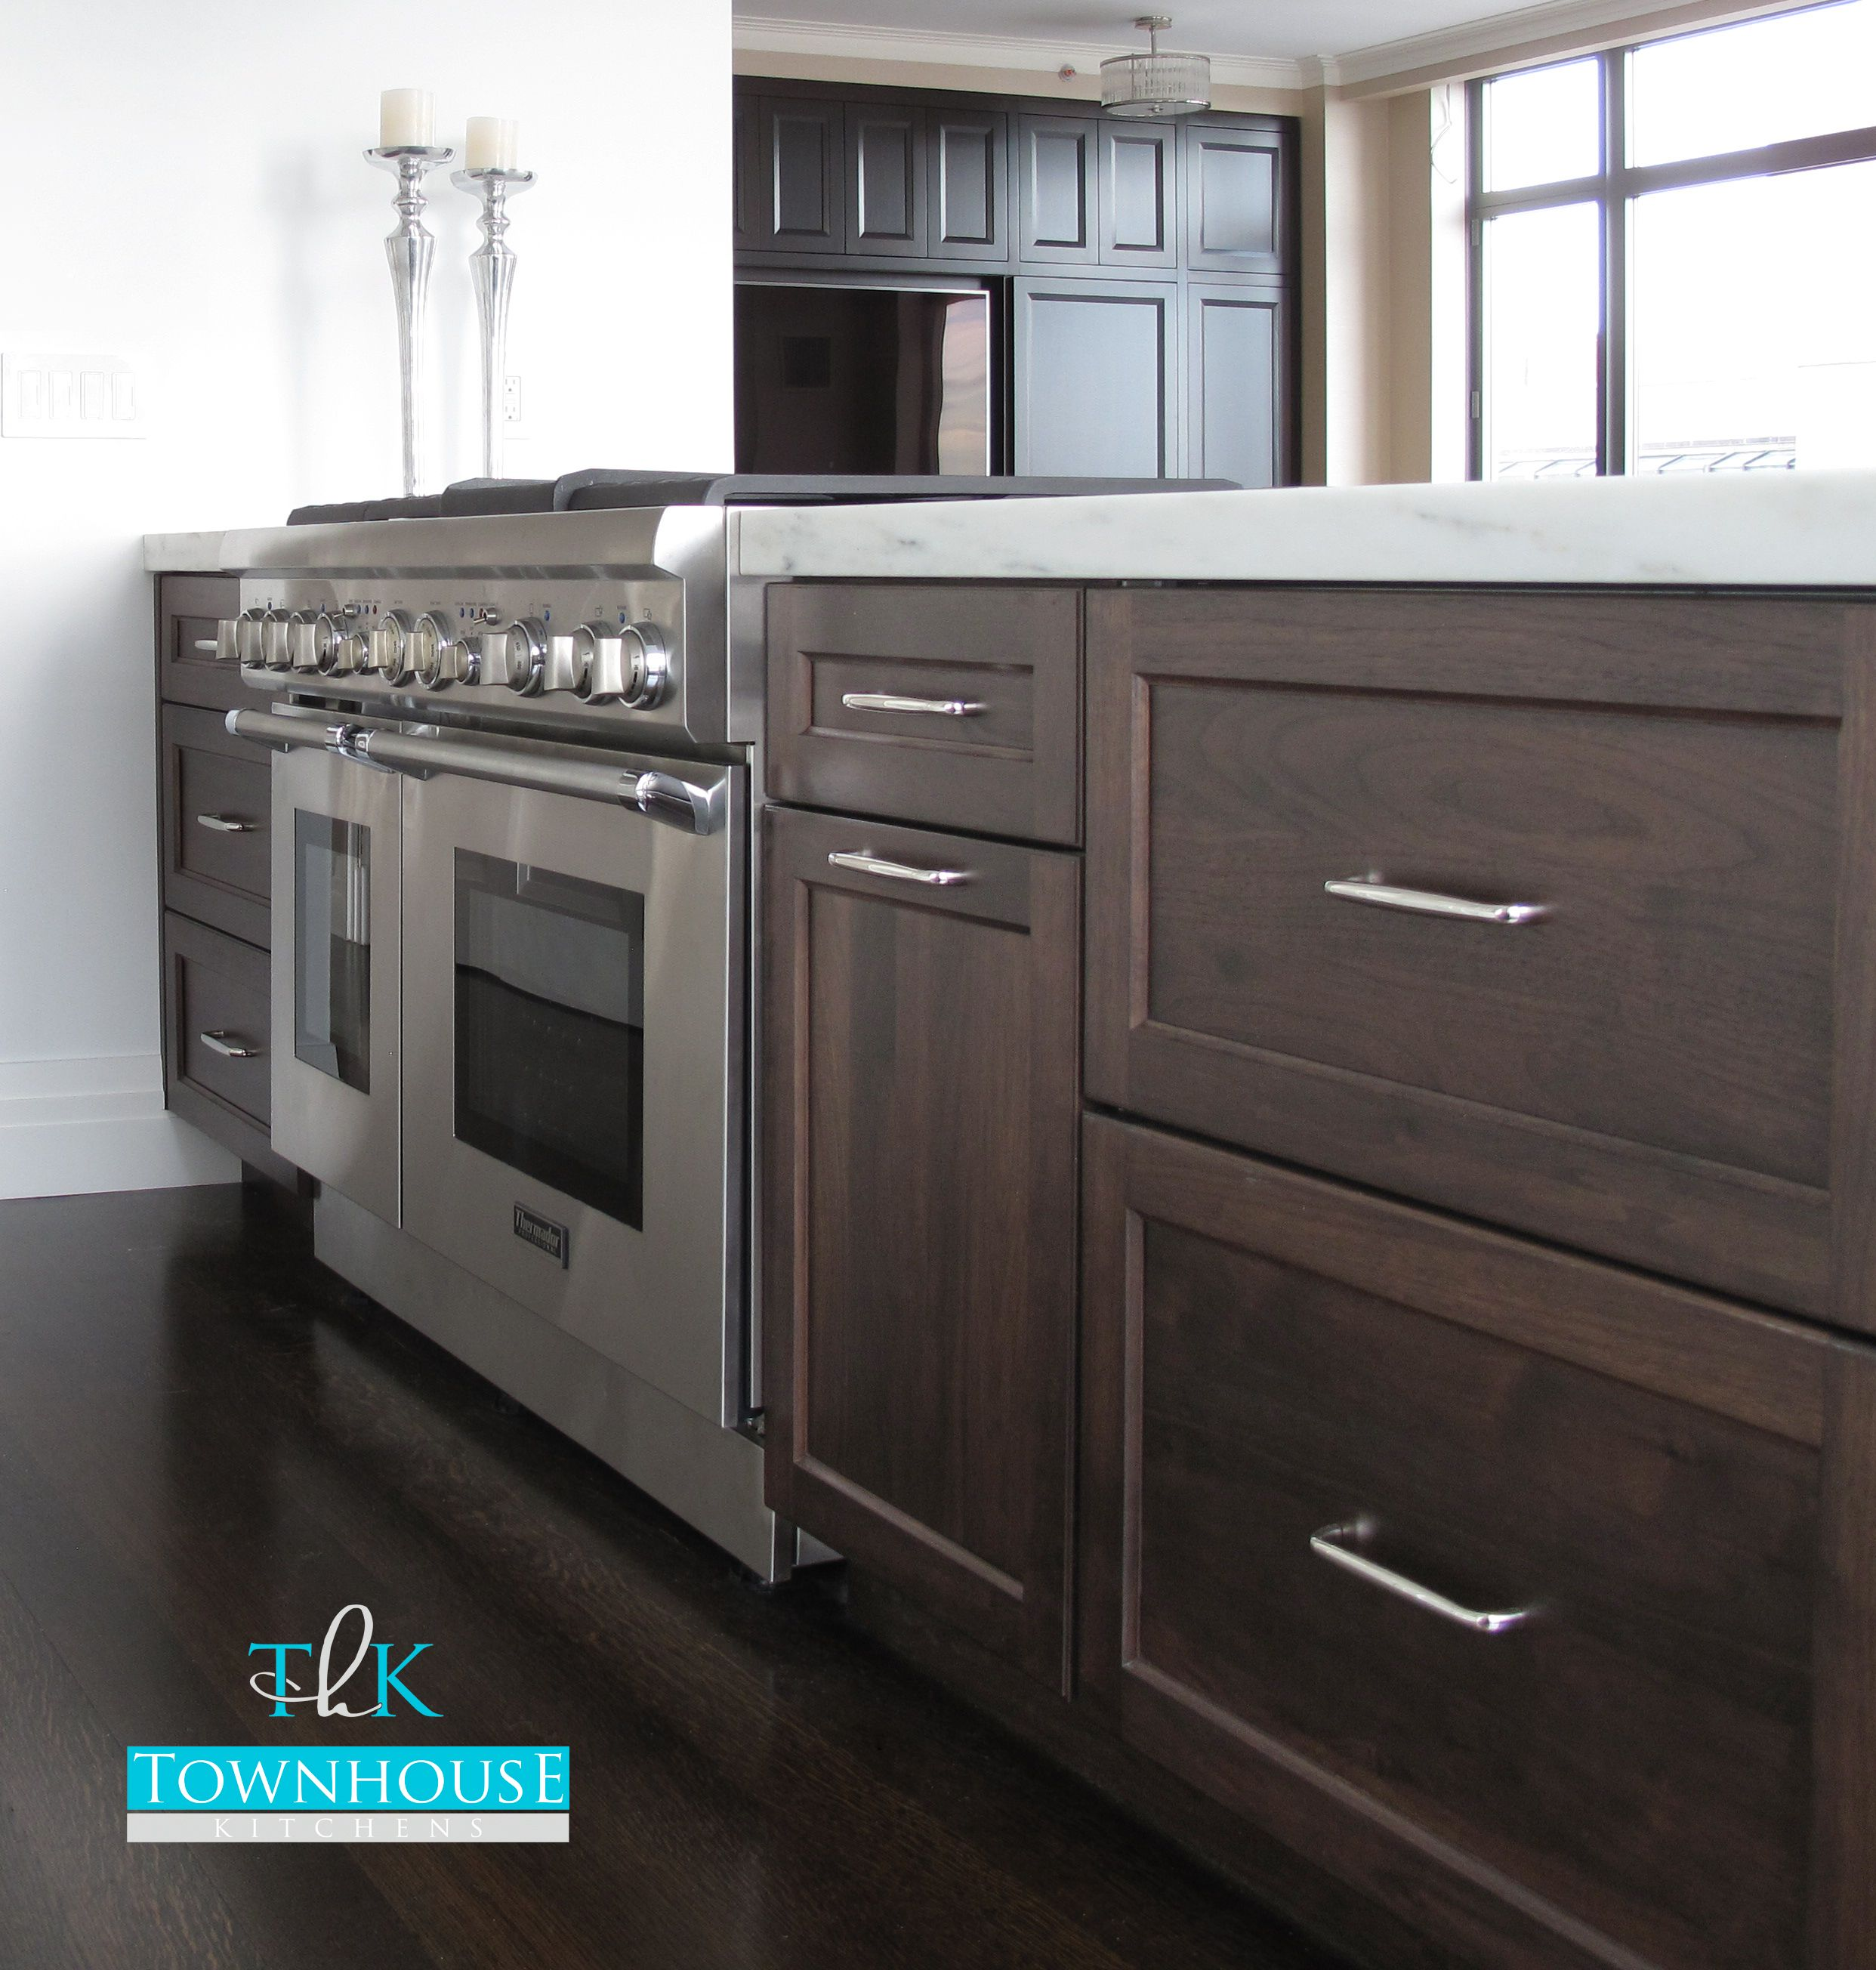 Custom Kitchen Design Walnut Cabinetry With Stainless Steal Appliances And 2 Thick Imperial Danby Marbl Uptown Kitchen Kitchen New York Contemporary Kitchen